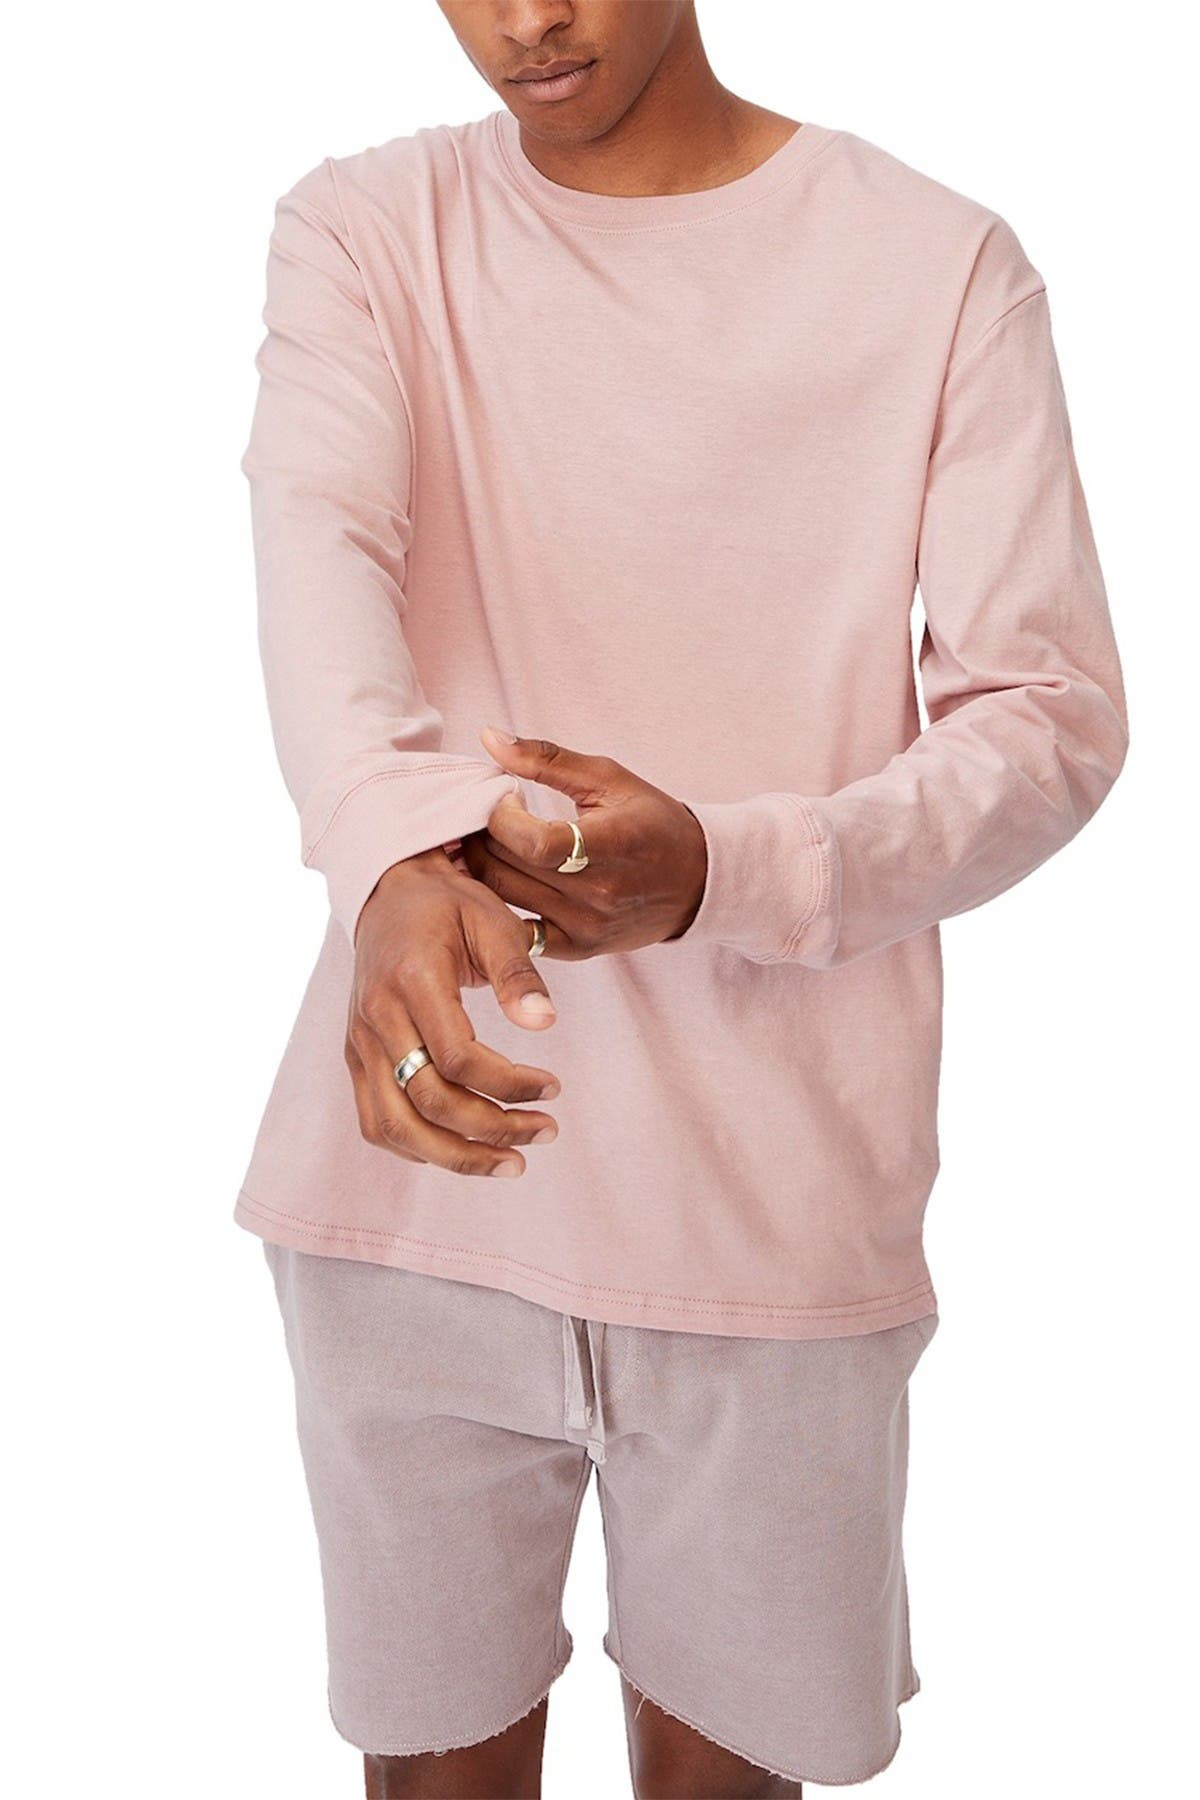 Cotton On GRAPHIC LONG SLEEVE T-SHIRT